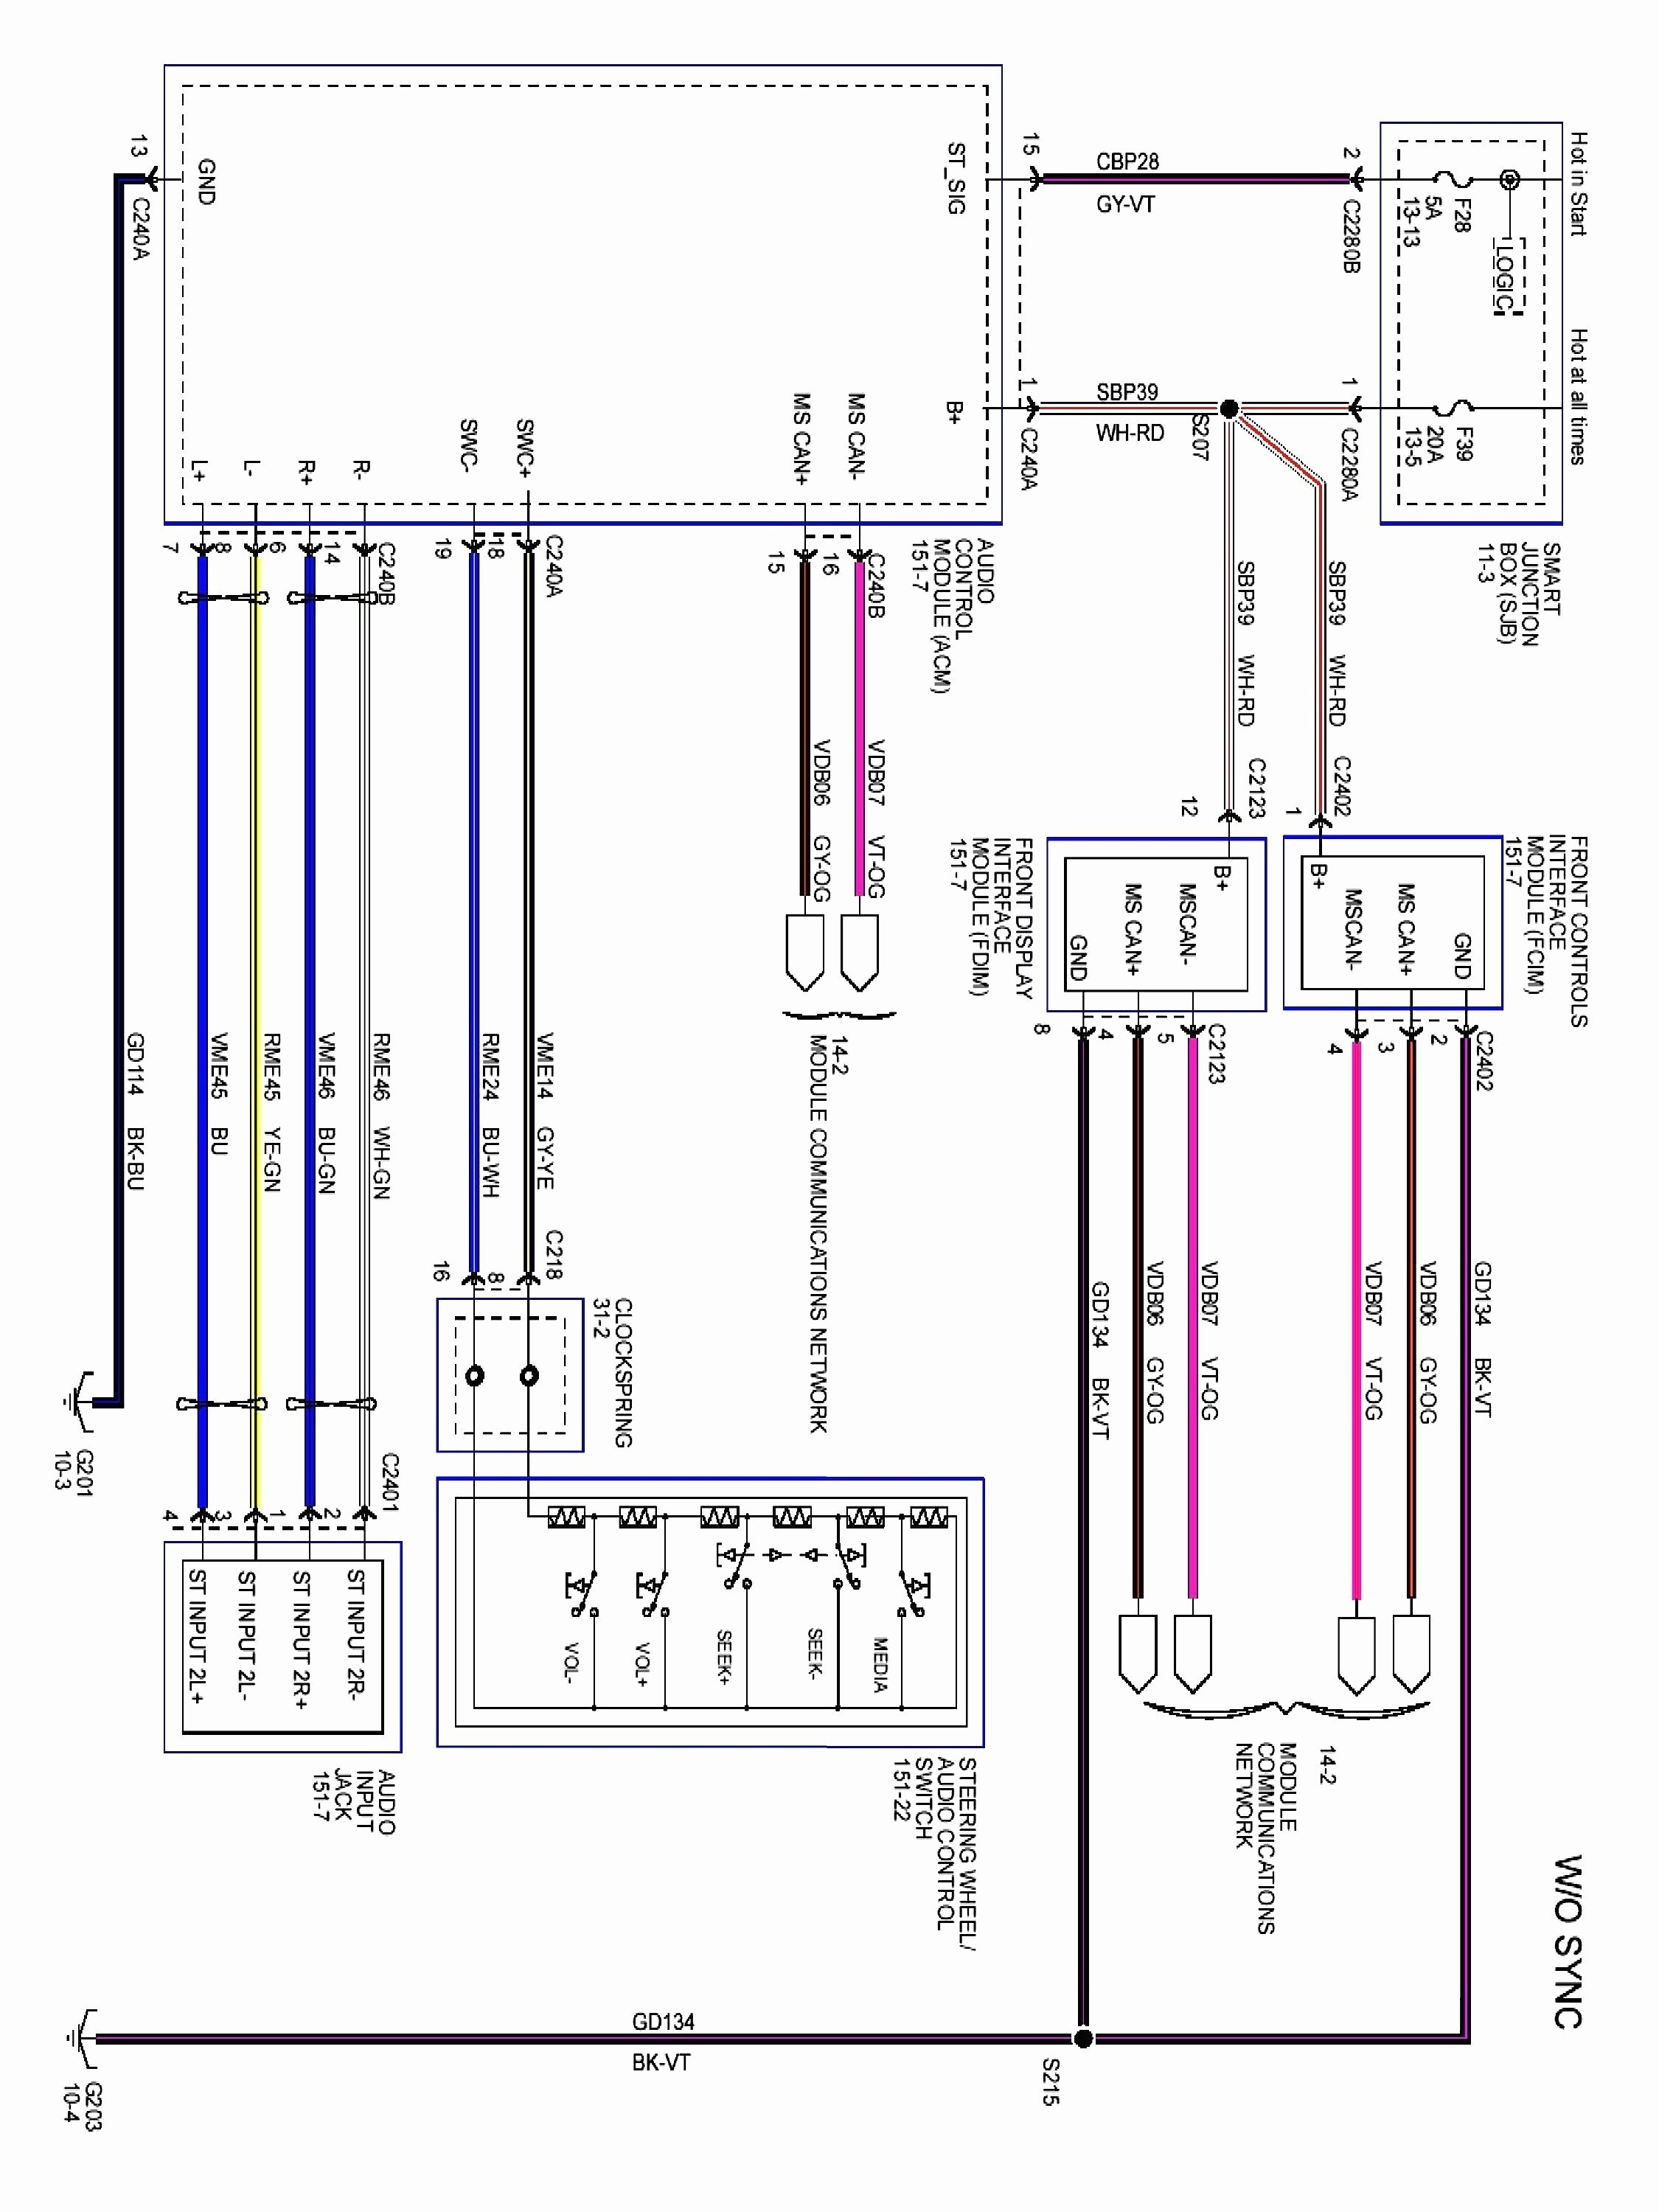 5 Channel Amp Wiring Diagram Car Amp Wiring Diagram Of 5 Channel Amp Wiring Diagram